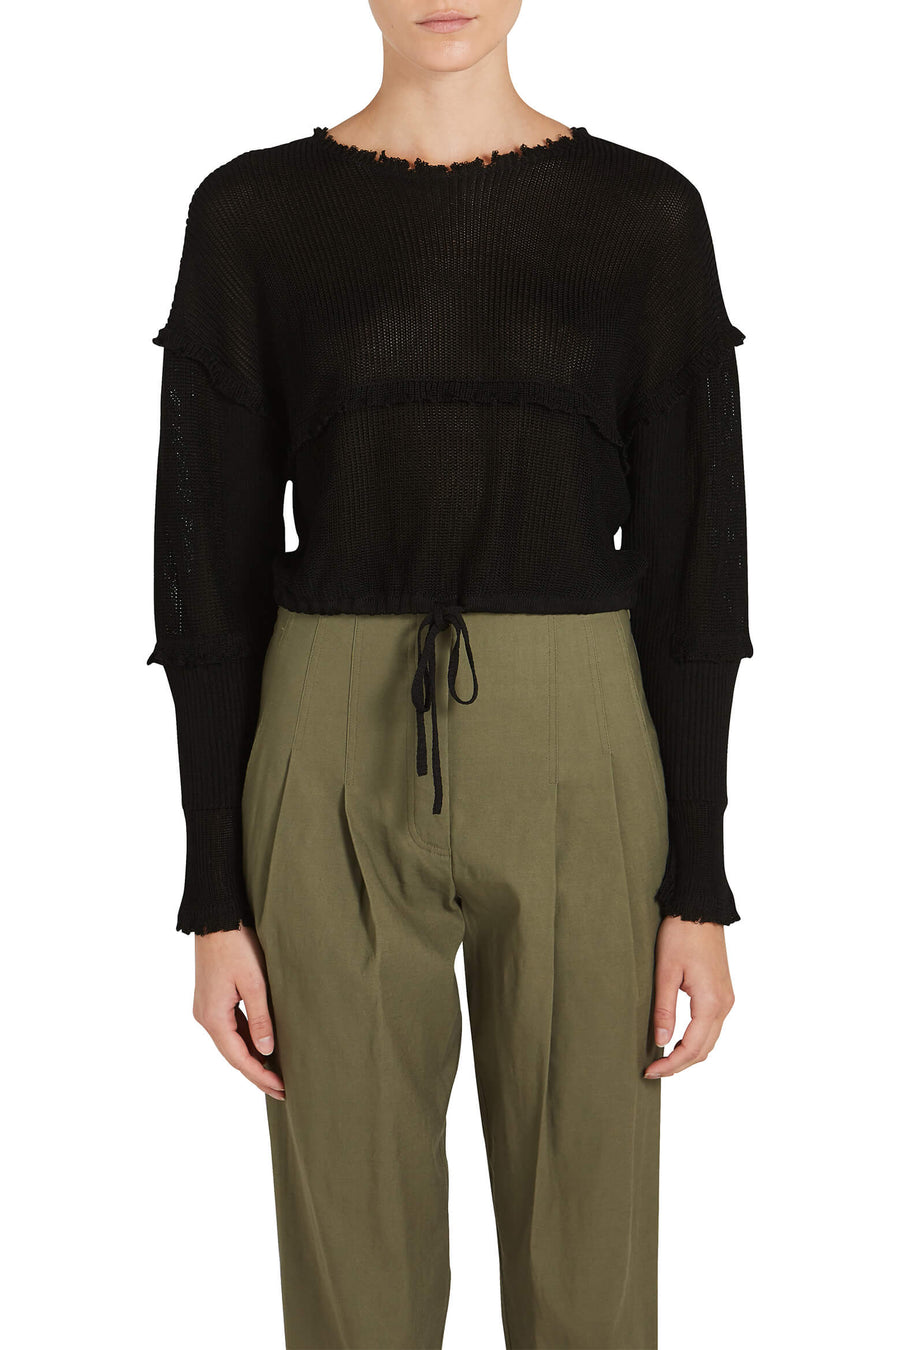 3.1 Phillip Lim Cropped Pullover The New Trend